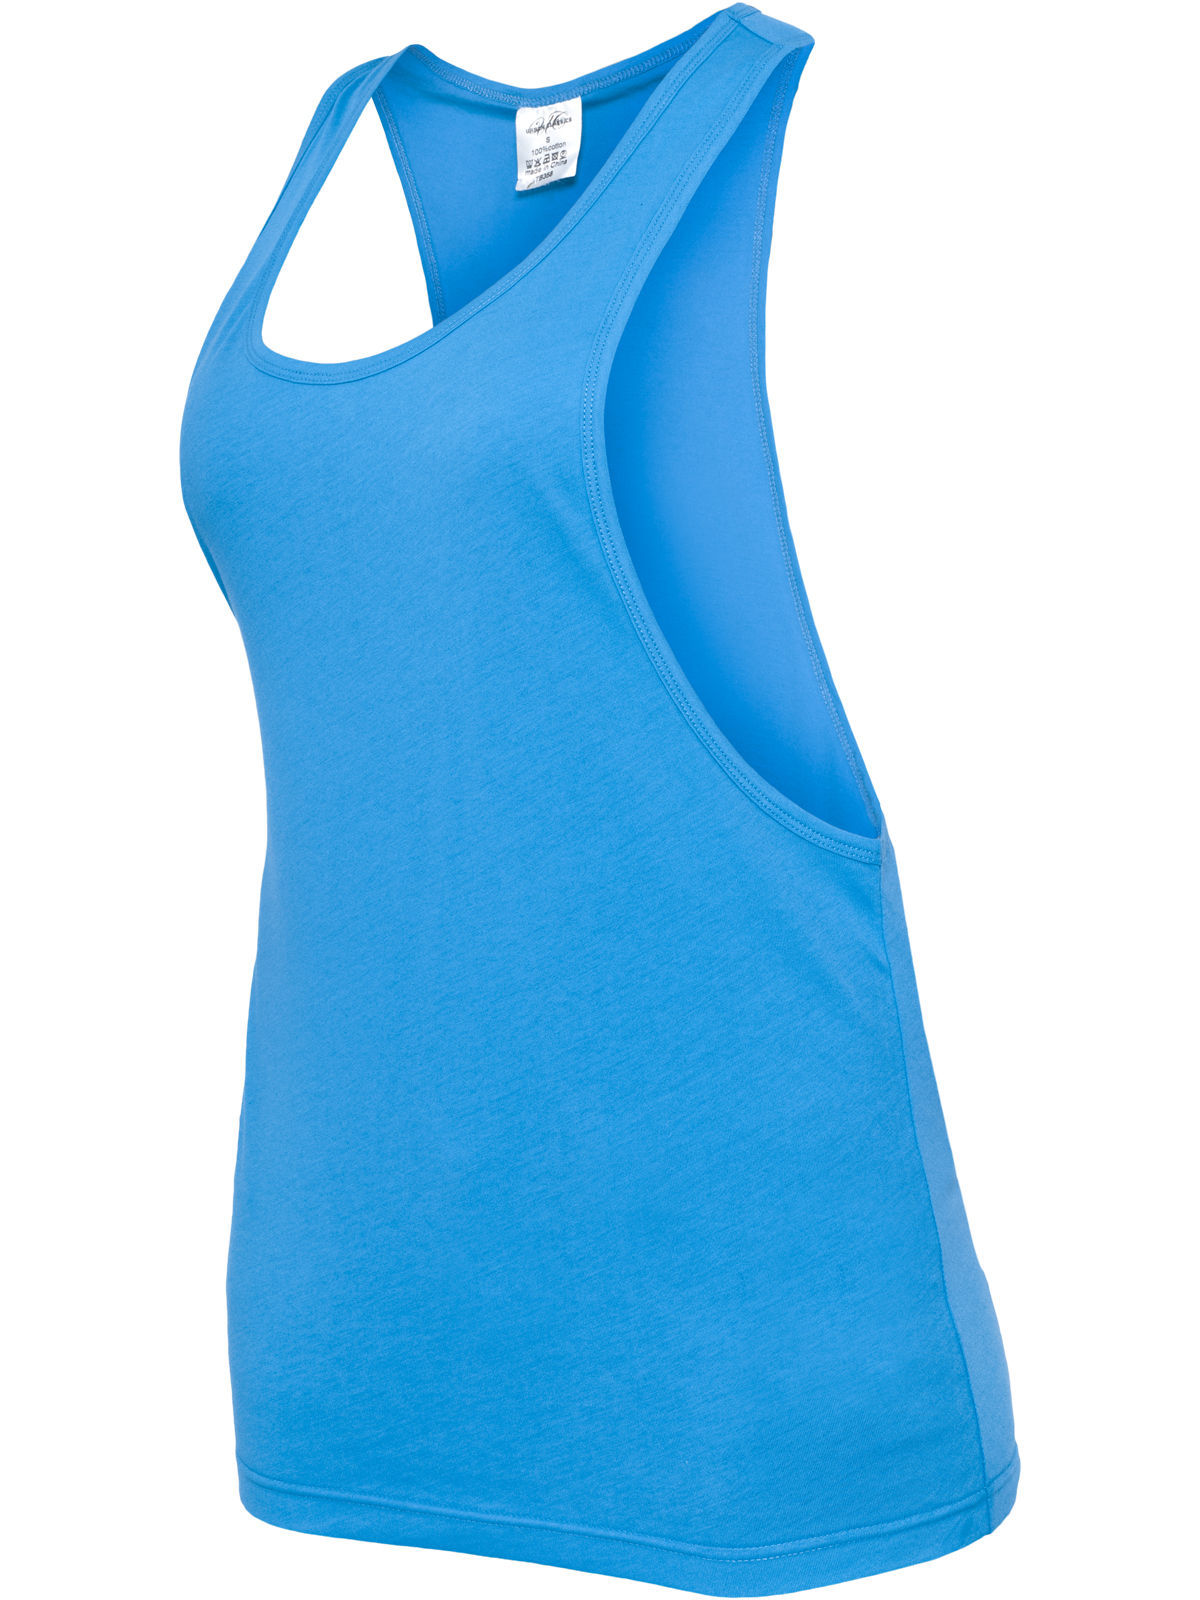 Urban Classics Ladies Loose Tank Turquoise Top for Woman